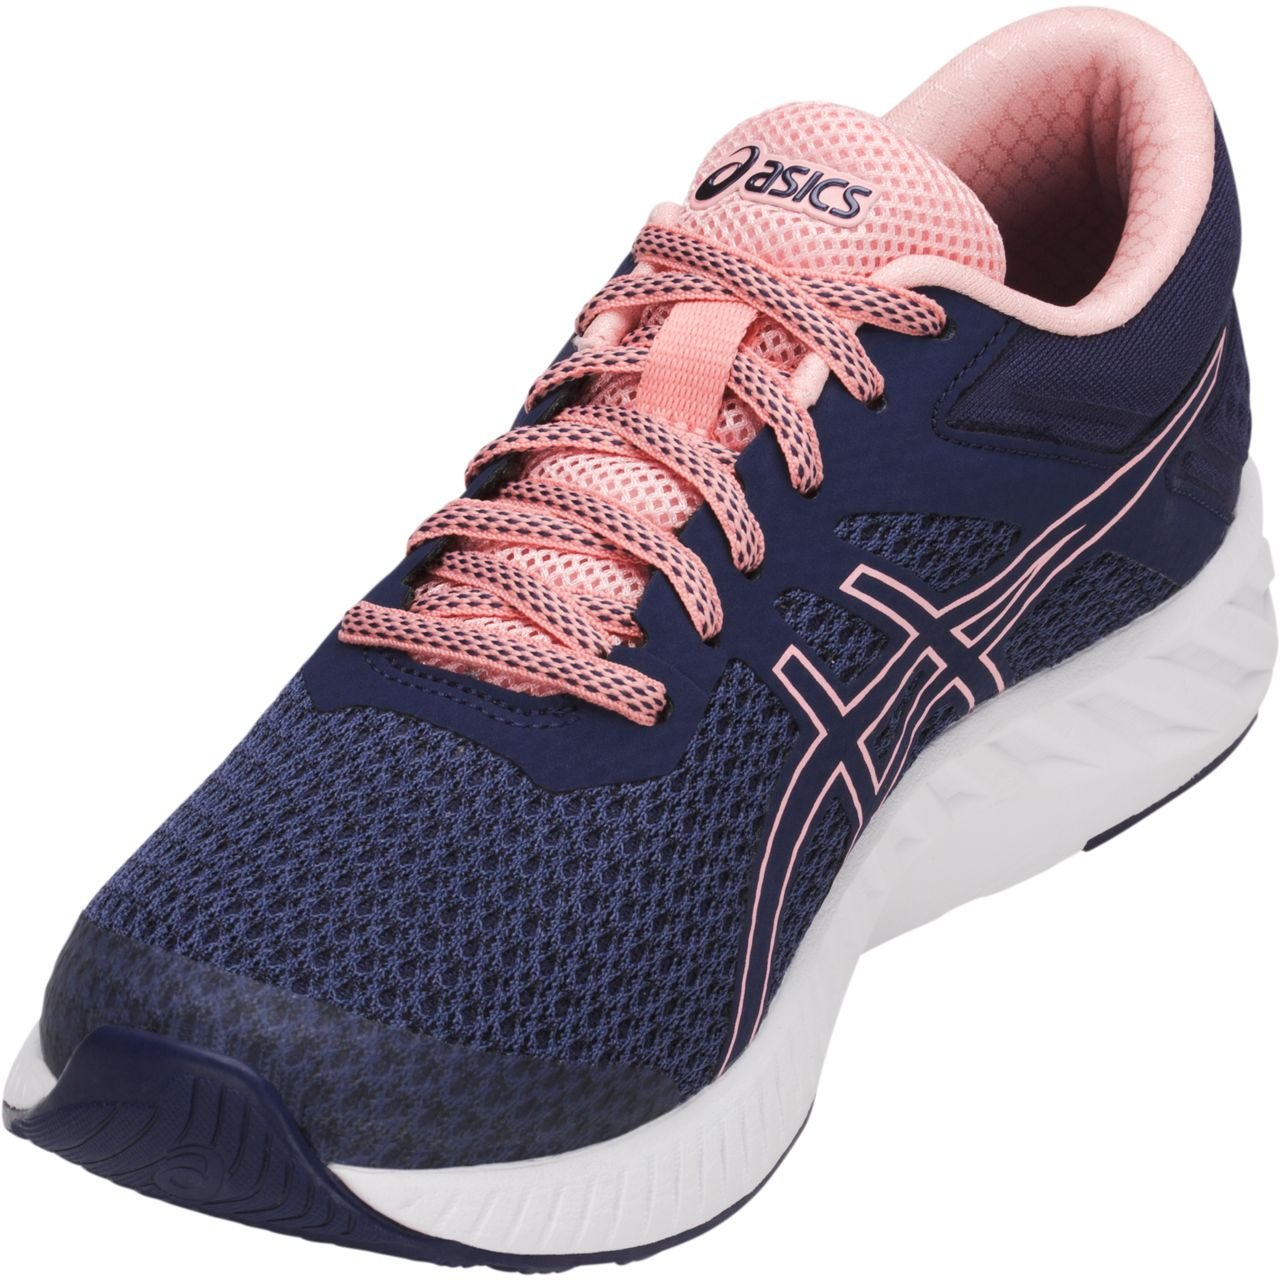 ASICS Women's Fuzex Lyte 2 Running Shoe B077MMSS1C 7 B(M) US|Indigo Blue/Frosted Rose